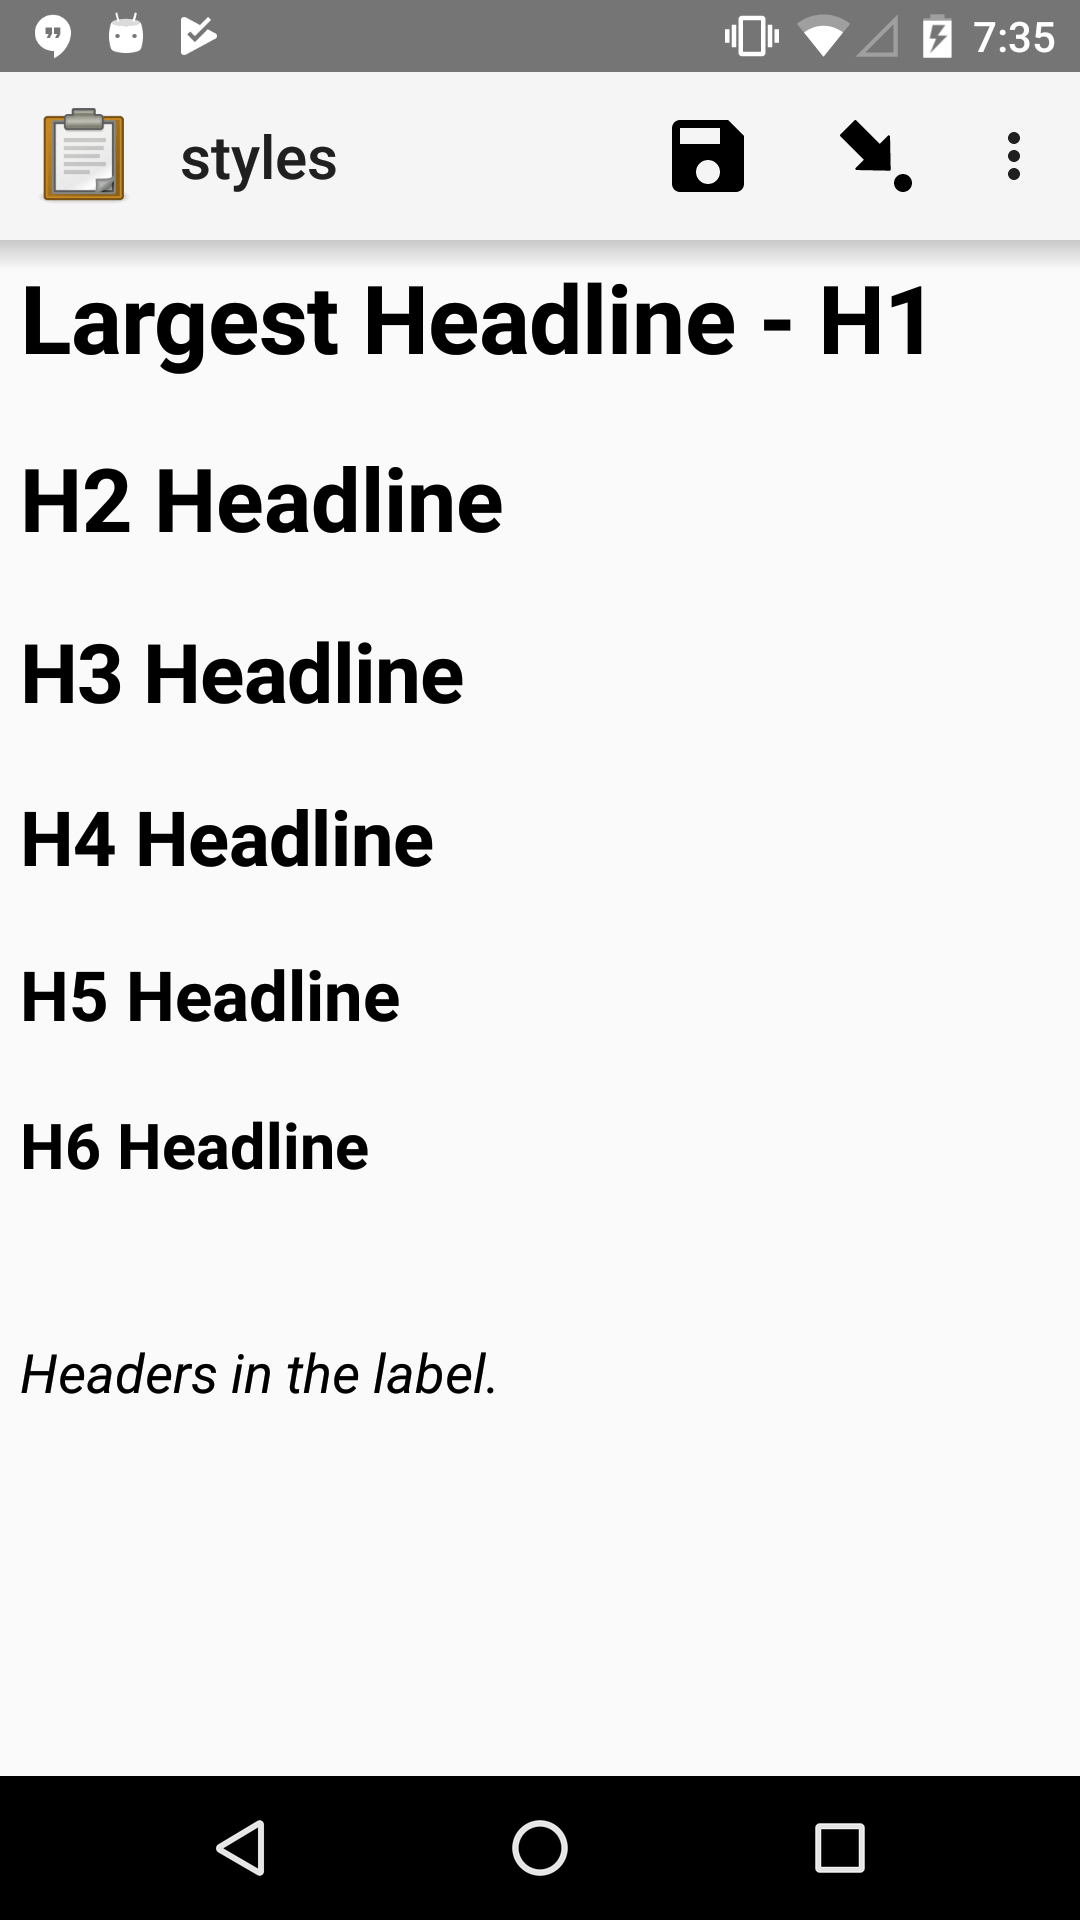 A note widget in Collect. The label is six headlines of decreasing size, with text describing the size as: H1, H2, H3, H4, H5, H6.